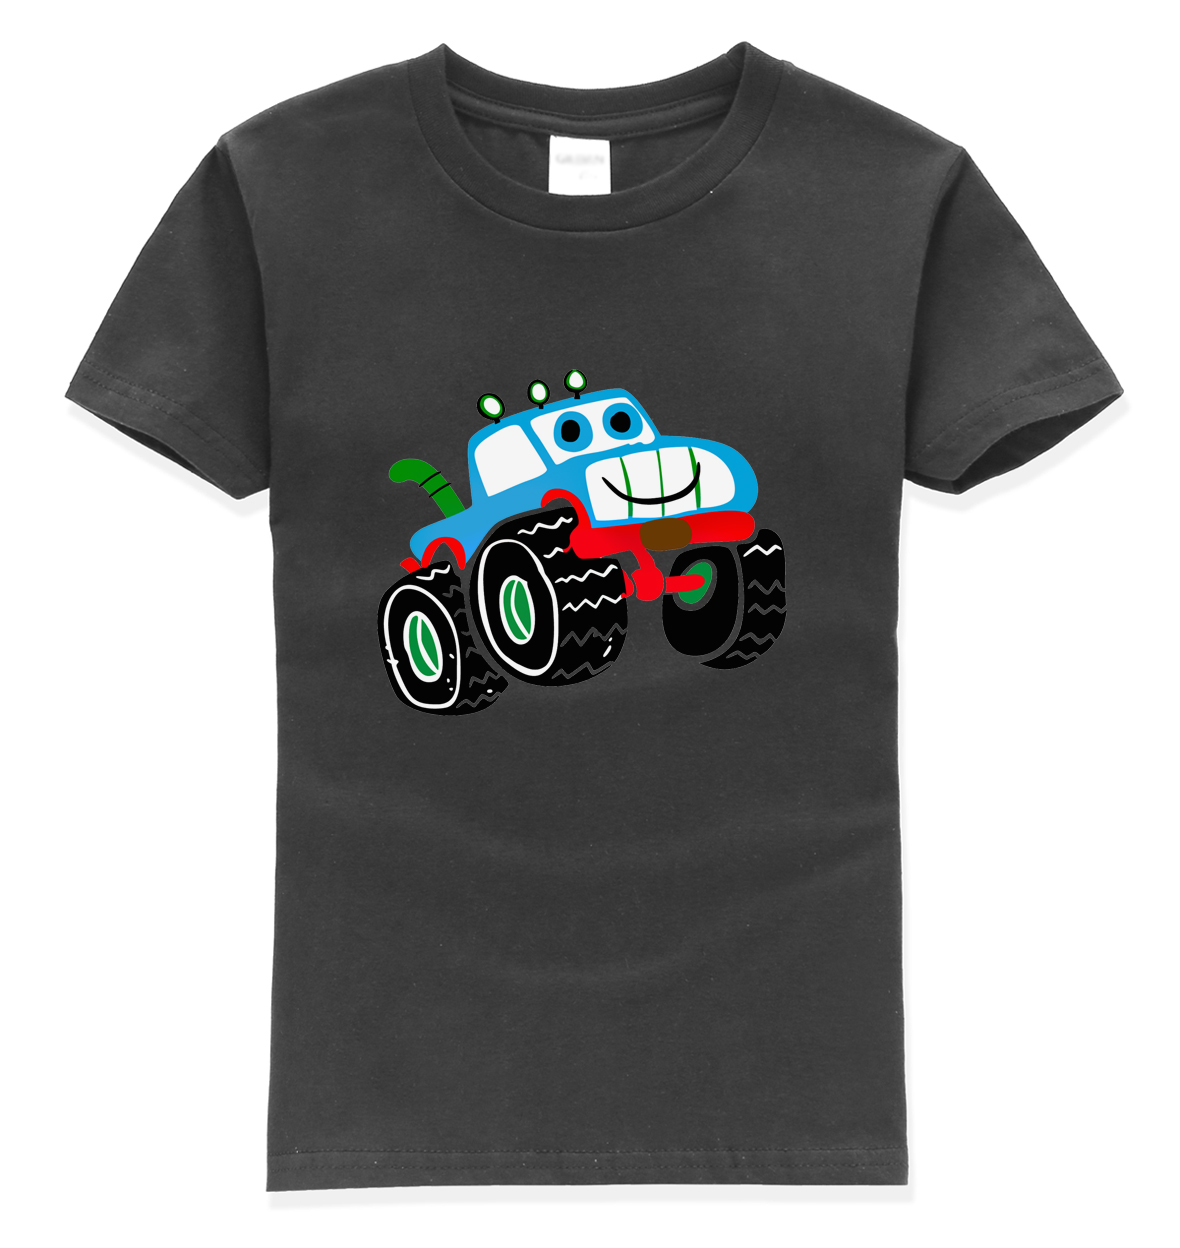 2018 summer new fashion brand hot sale t shirts children funny cartoon car tops tee homme kids t shirt boys clothes short sleeve funny cat tops tee shirts summer brand clothing short sleeve 2018 new fashion kids o neck cotton t shirts chikdren clothes mma